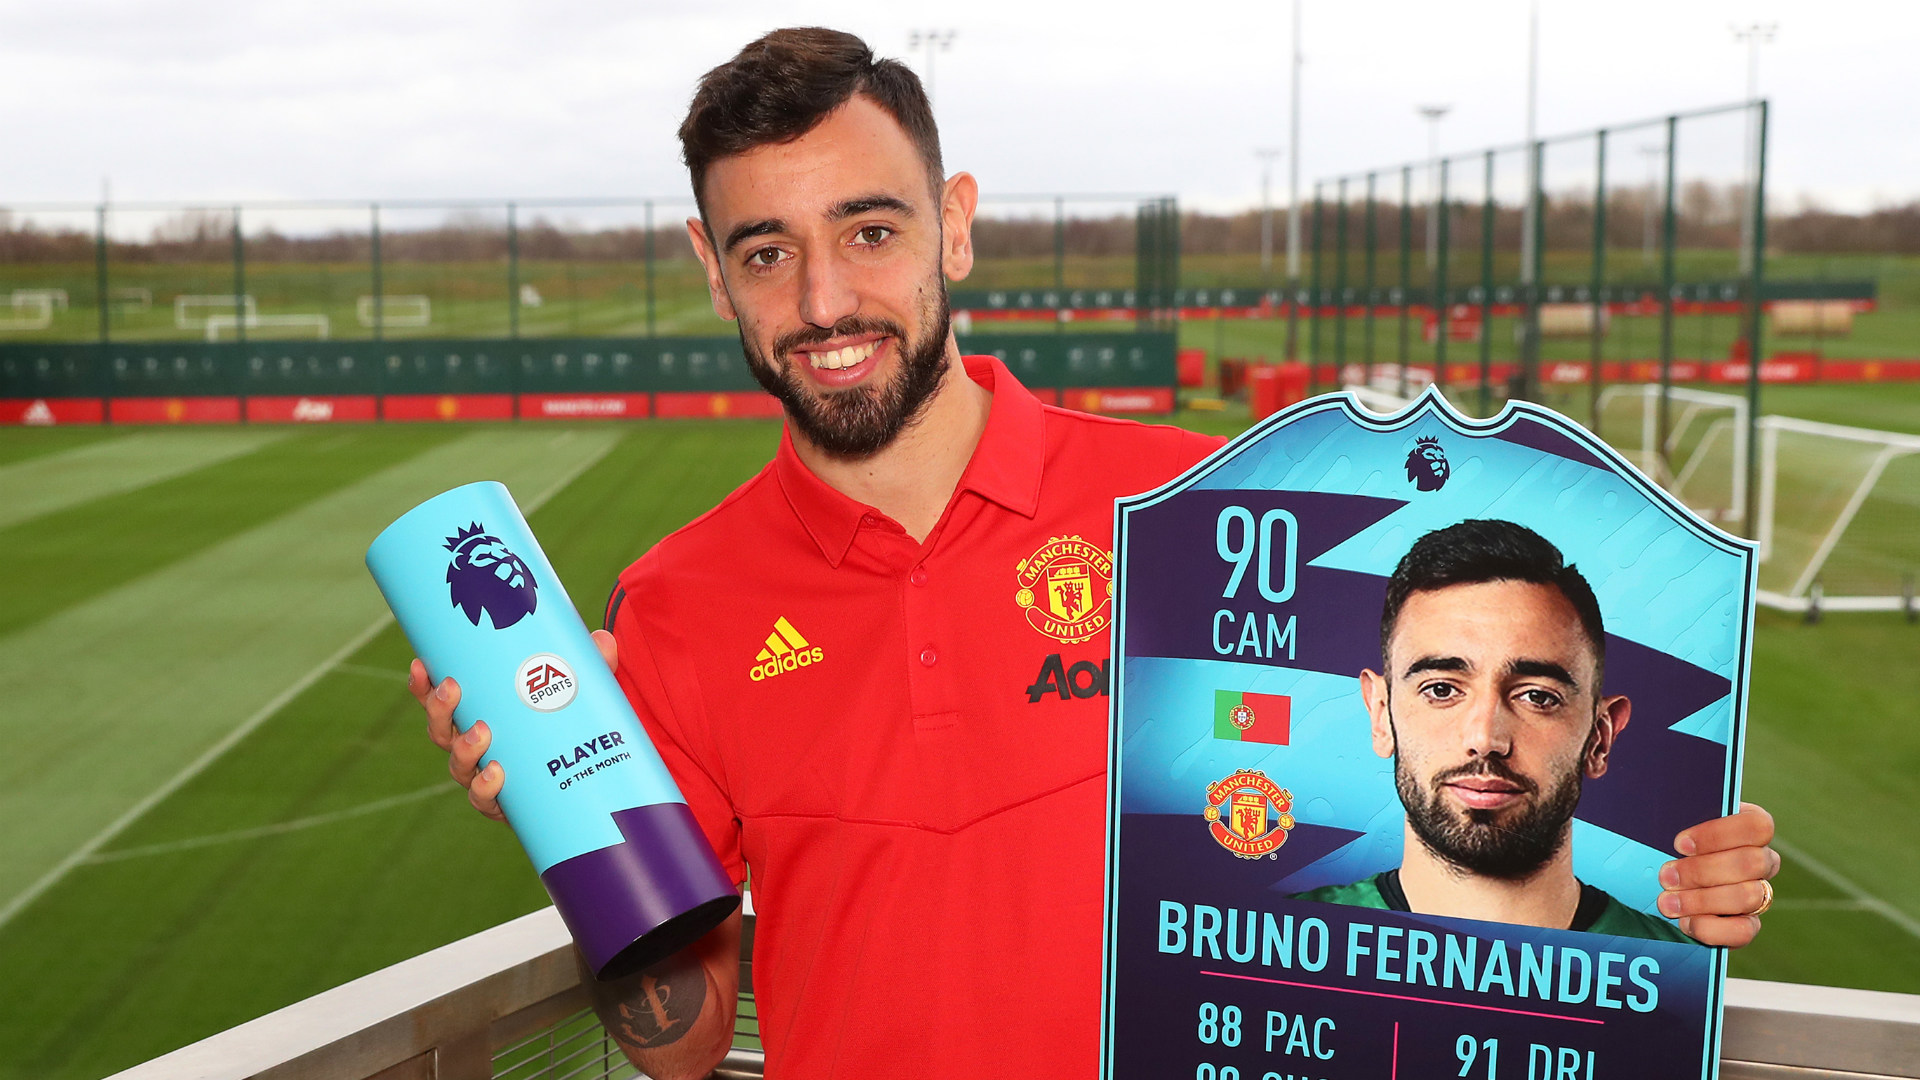 'Fernandes is going to be a legend' - Dalot backs Man Utd team-mate for greater success